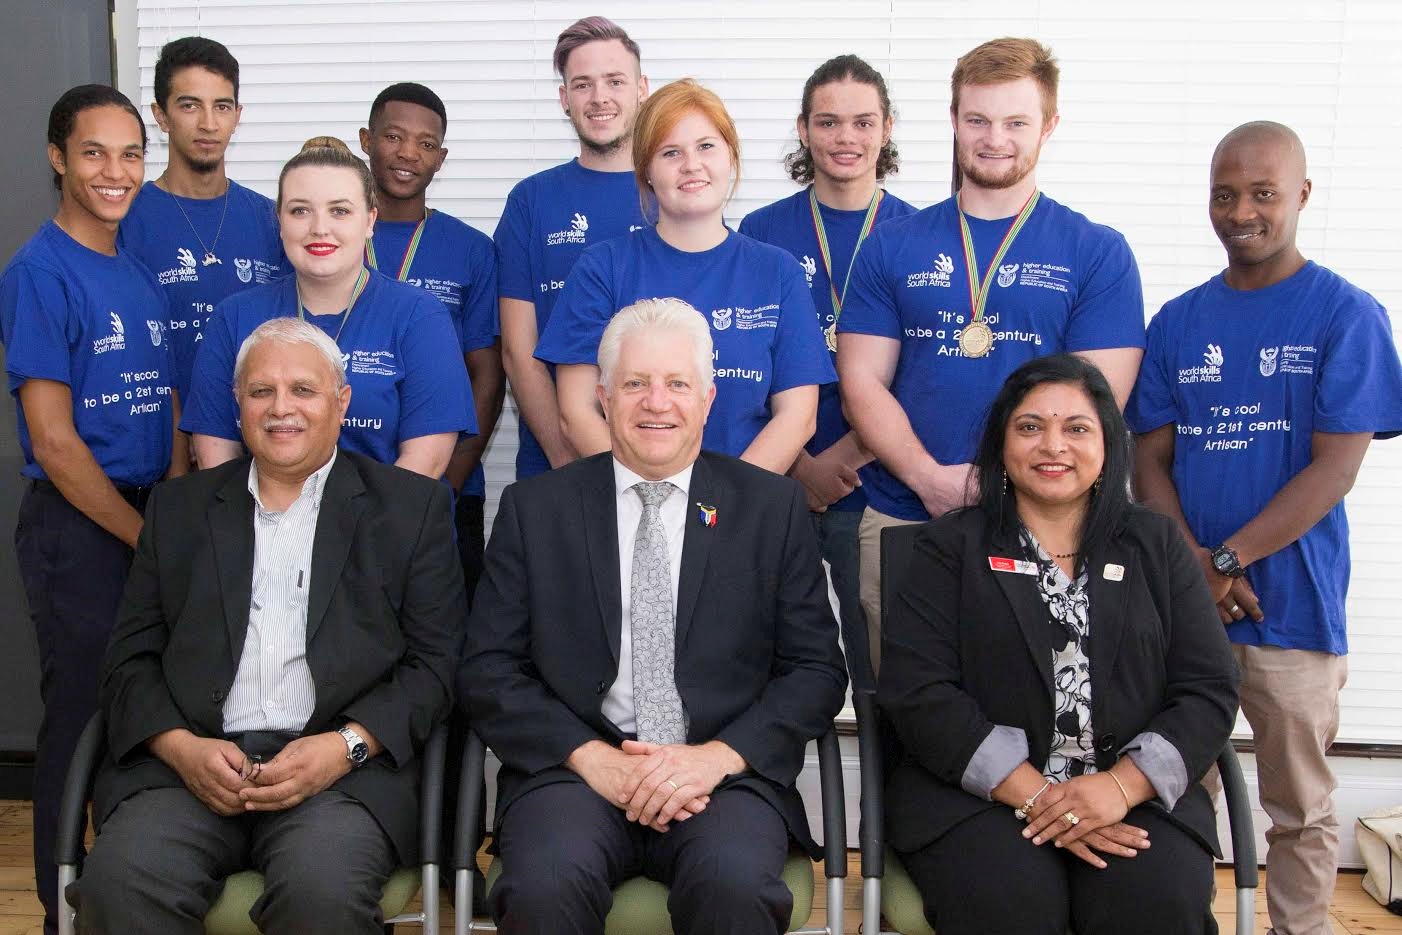 Alan Winde, Minister of Economic Opportunities, Ebrahim Peters, Provincial Artisan Development Steering Committee Chairperson, Tilly Reddy: WorldSkills South Africa Western Cape Sub-Committee Chairperson with some of the WorldSkills South Africa medalists